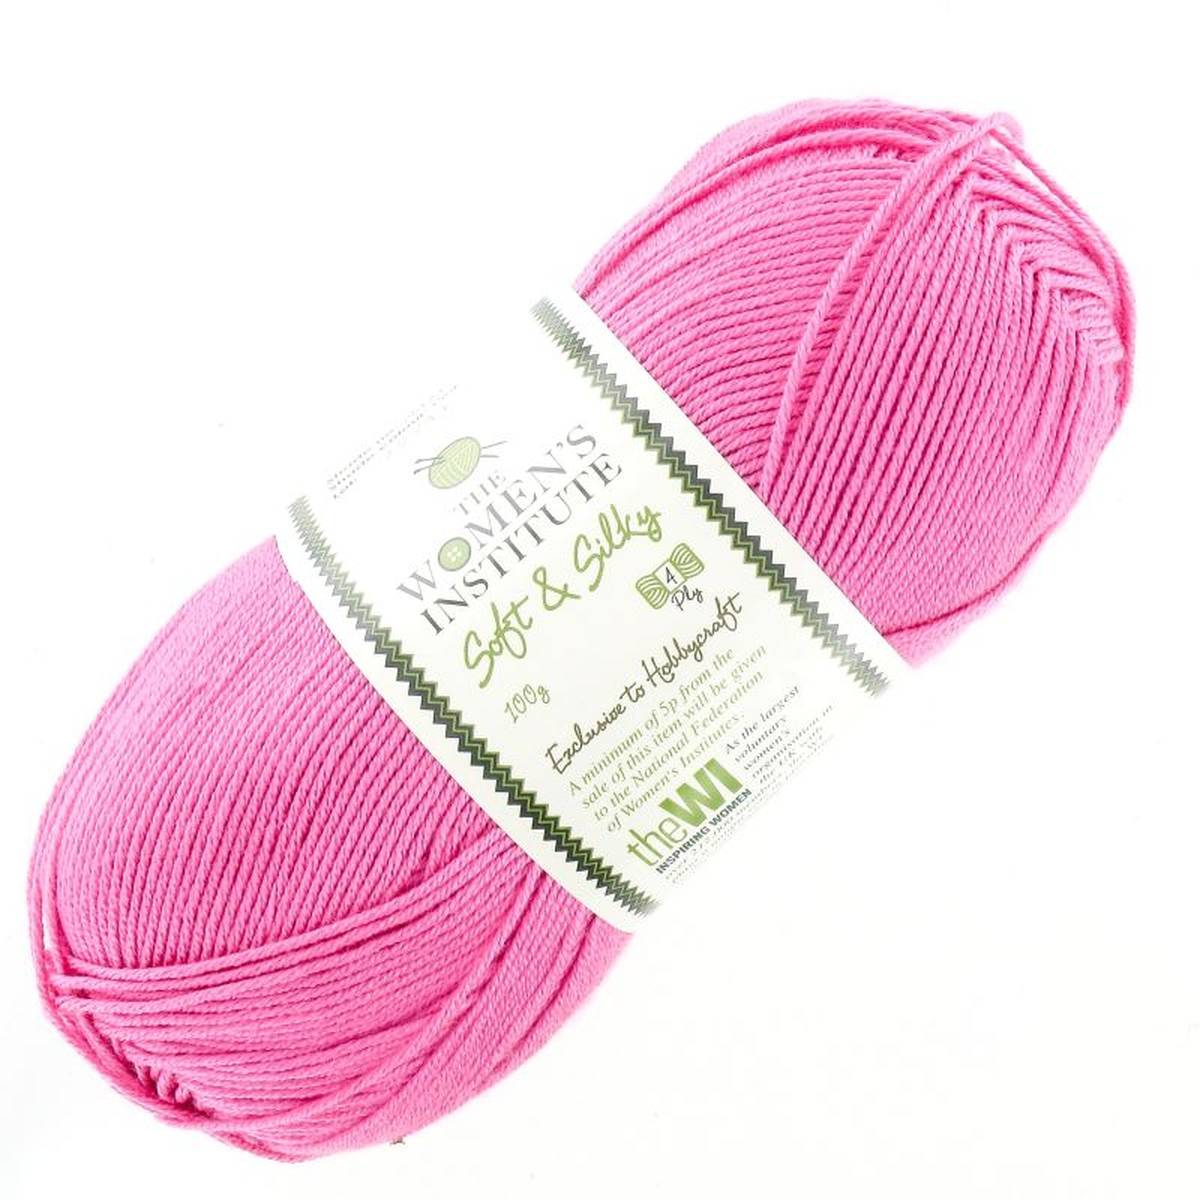 Womens Institute Pink Soft and Silky Yarn 100 g